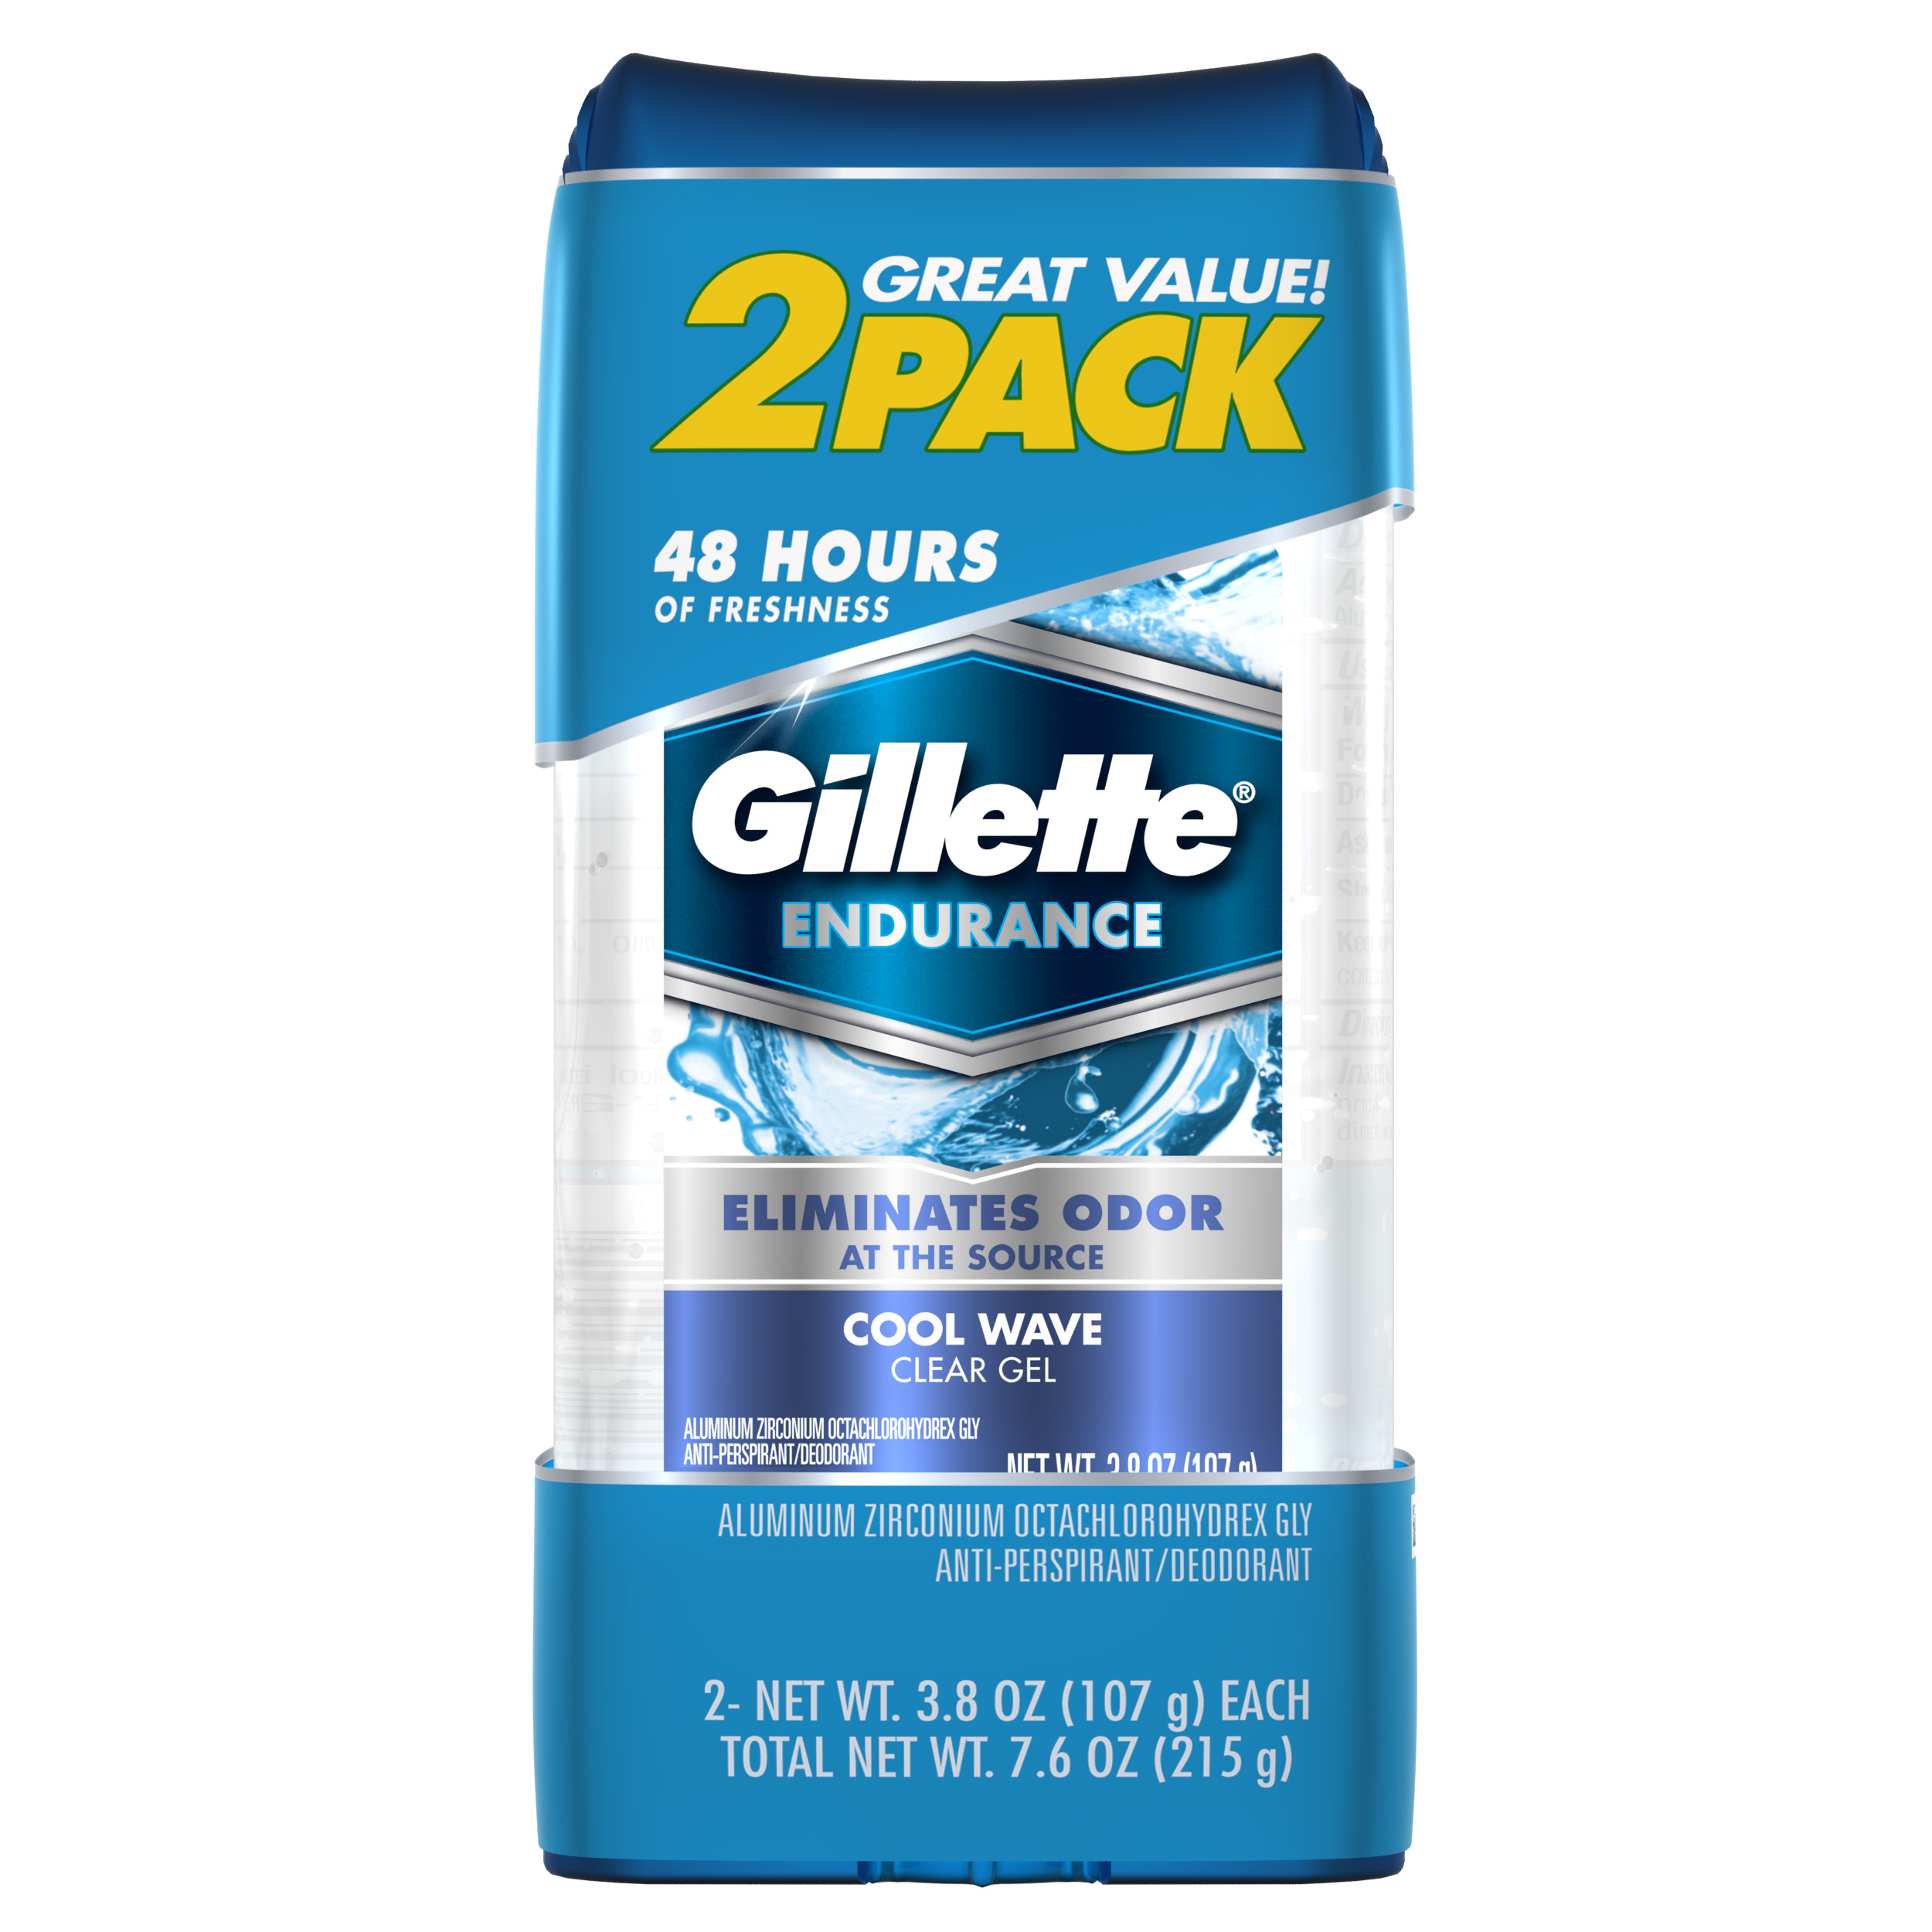 Gillette Cool Wave Clear Gel Mens Antiperspirant and Deodorant 3.8 oz each 2-Pack